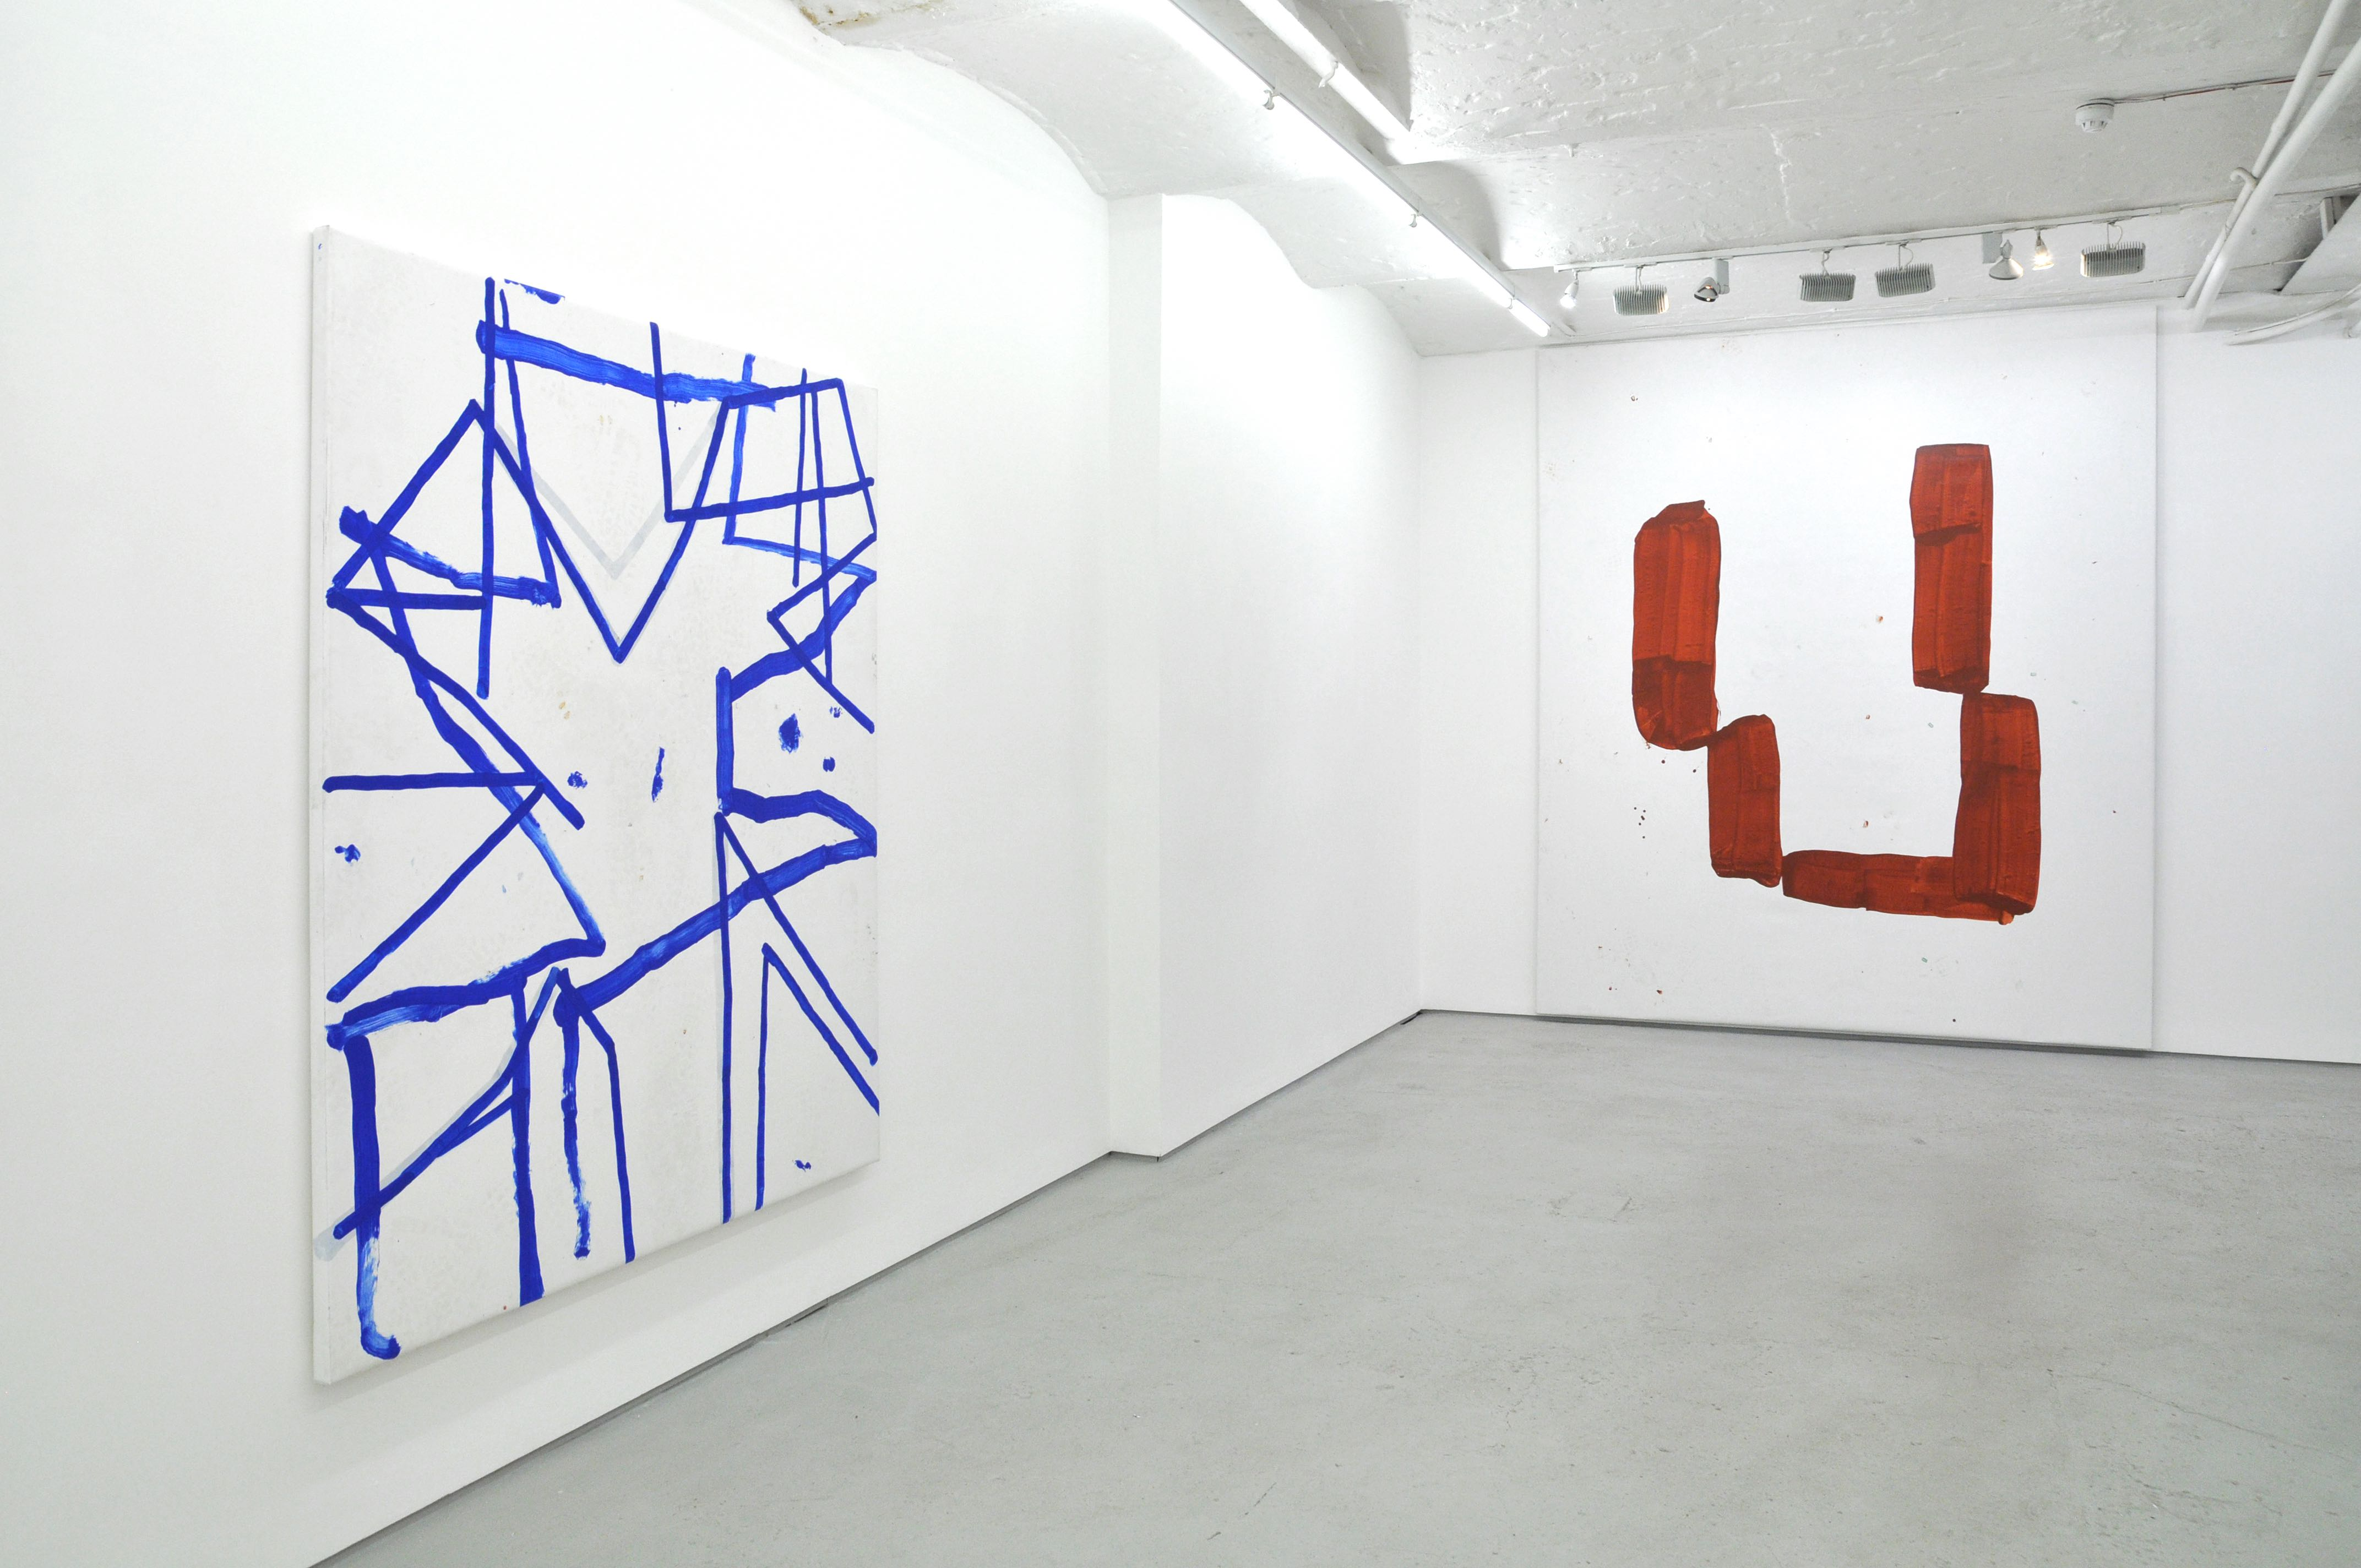 Installation View, DROOR'NGS at FOLD, Images Courtesy of Fold